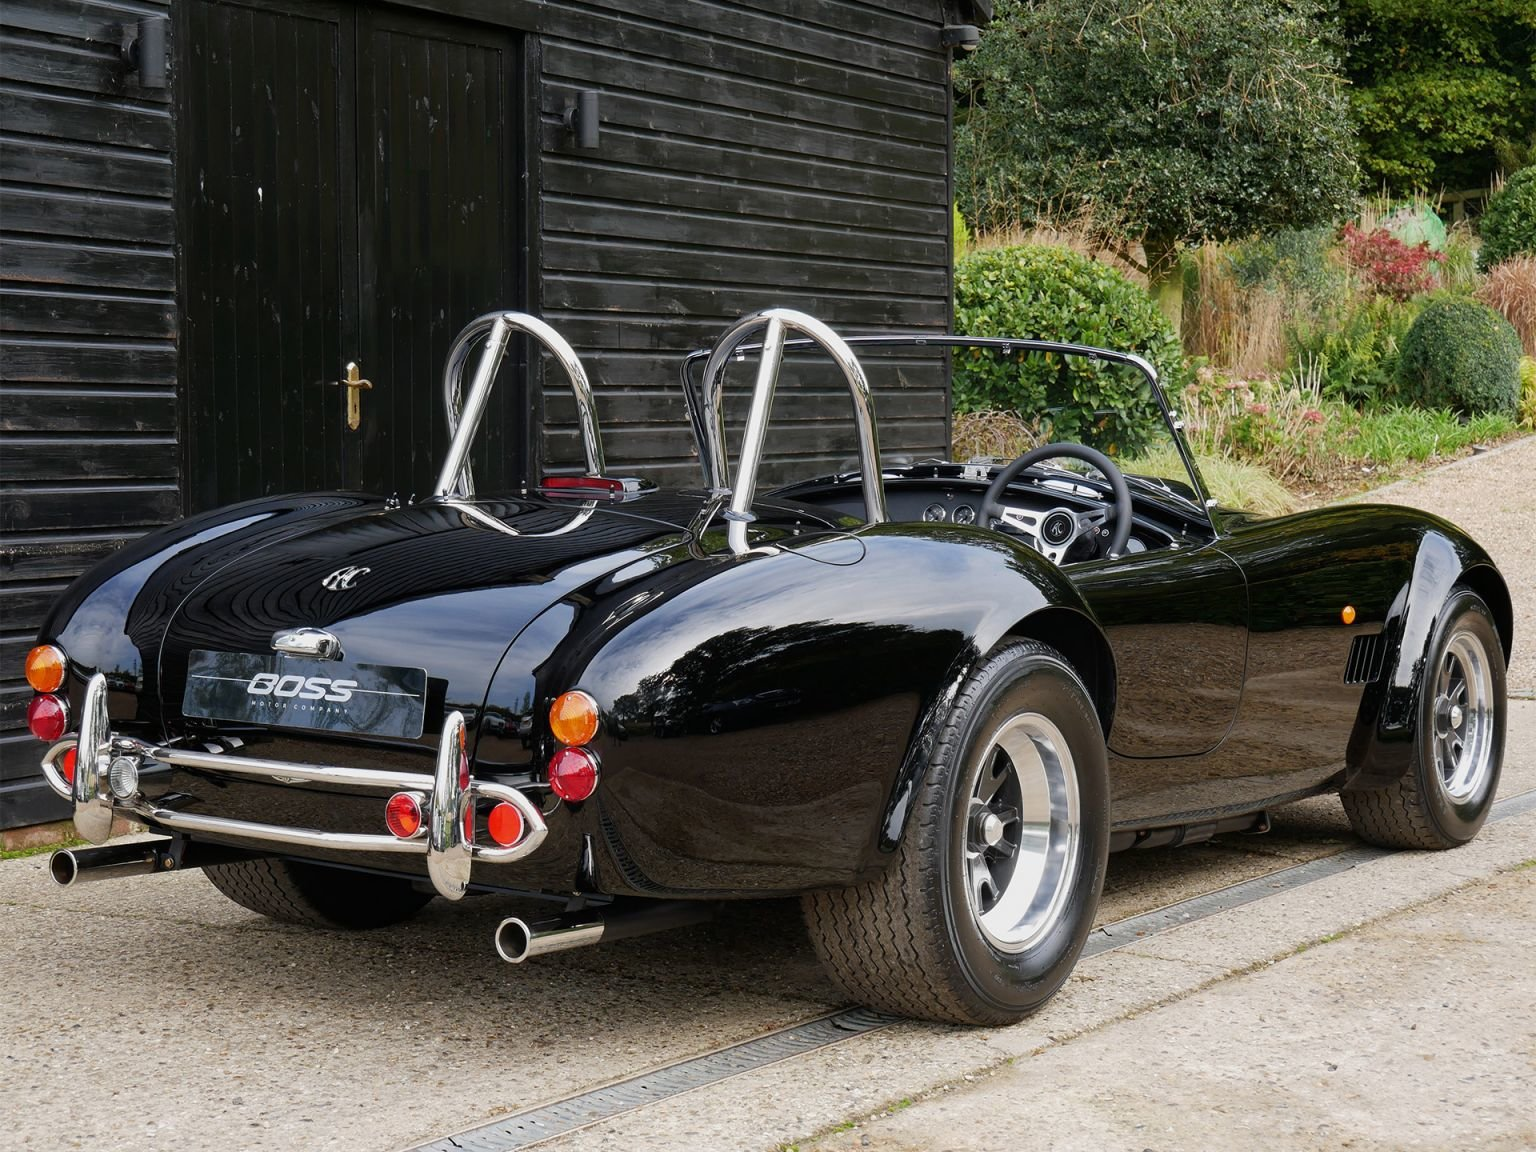 2020 AC COBRA 378 - NEW TO ORDER MKIV For Sale (picture 3 of 6)